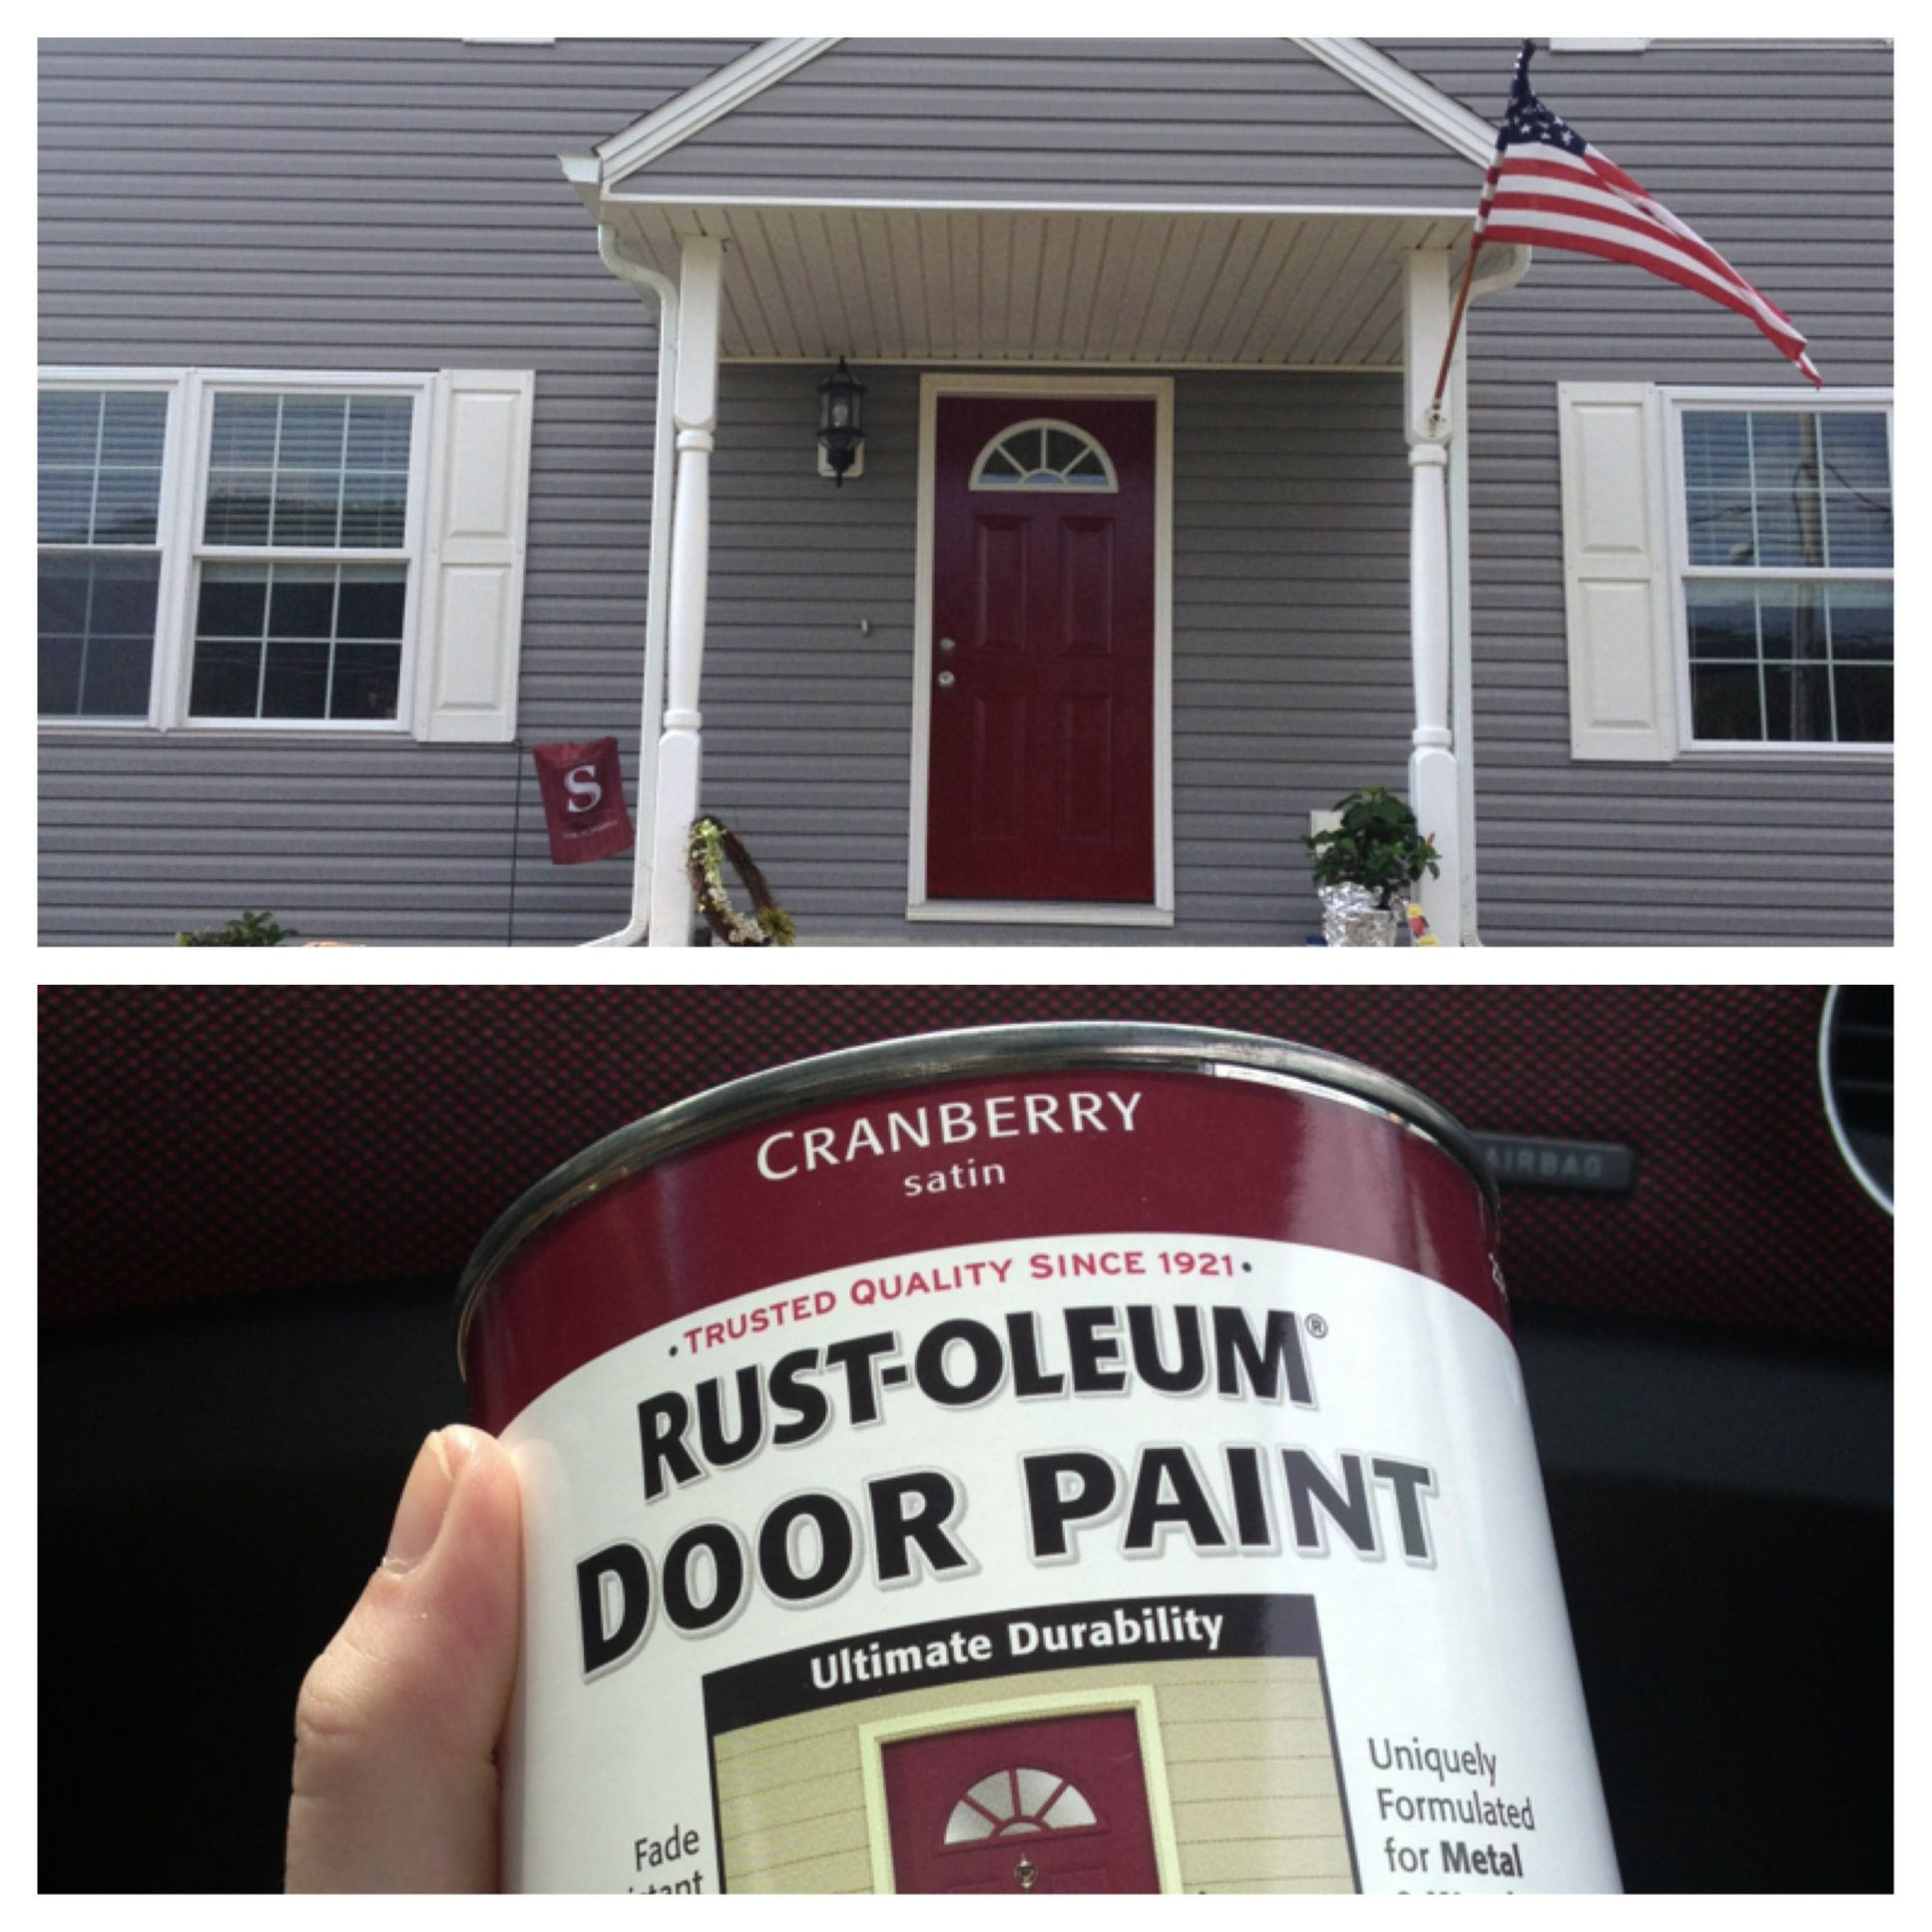 Always wanted a red front door paint is from lowes rust oleum always wanted a red front door paint is from lowes rust oleum cranberry satin baanklon Images